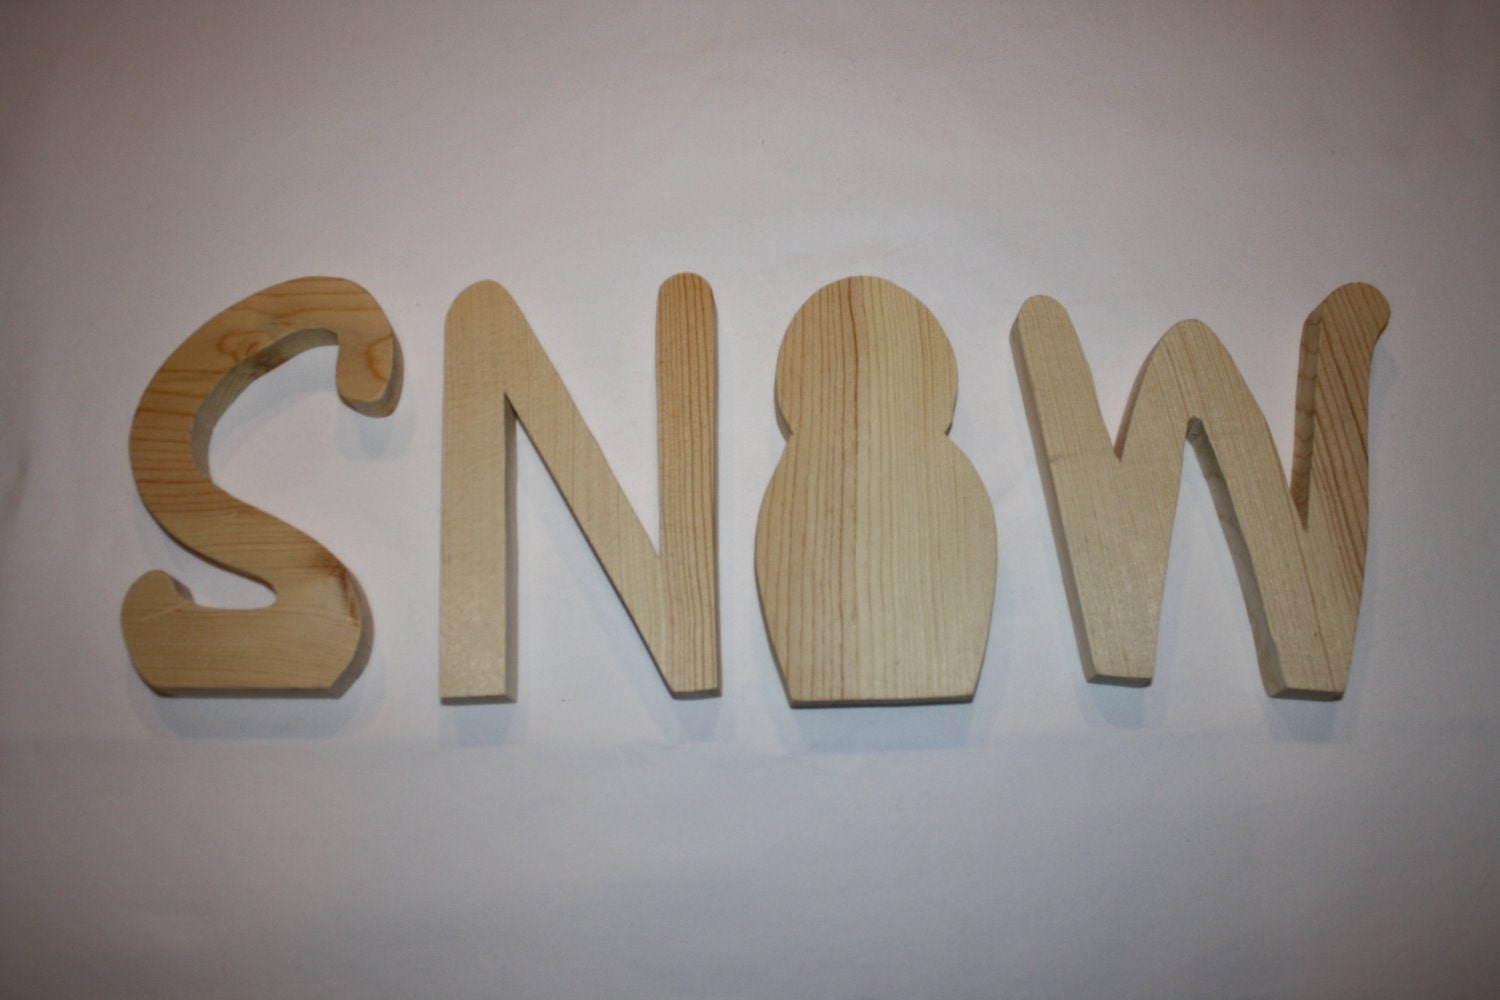 Snow unfinished wood word to decorate your home for the season